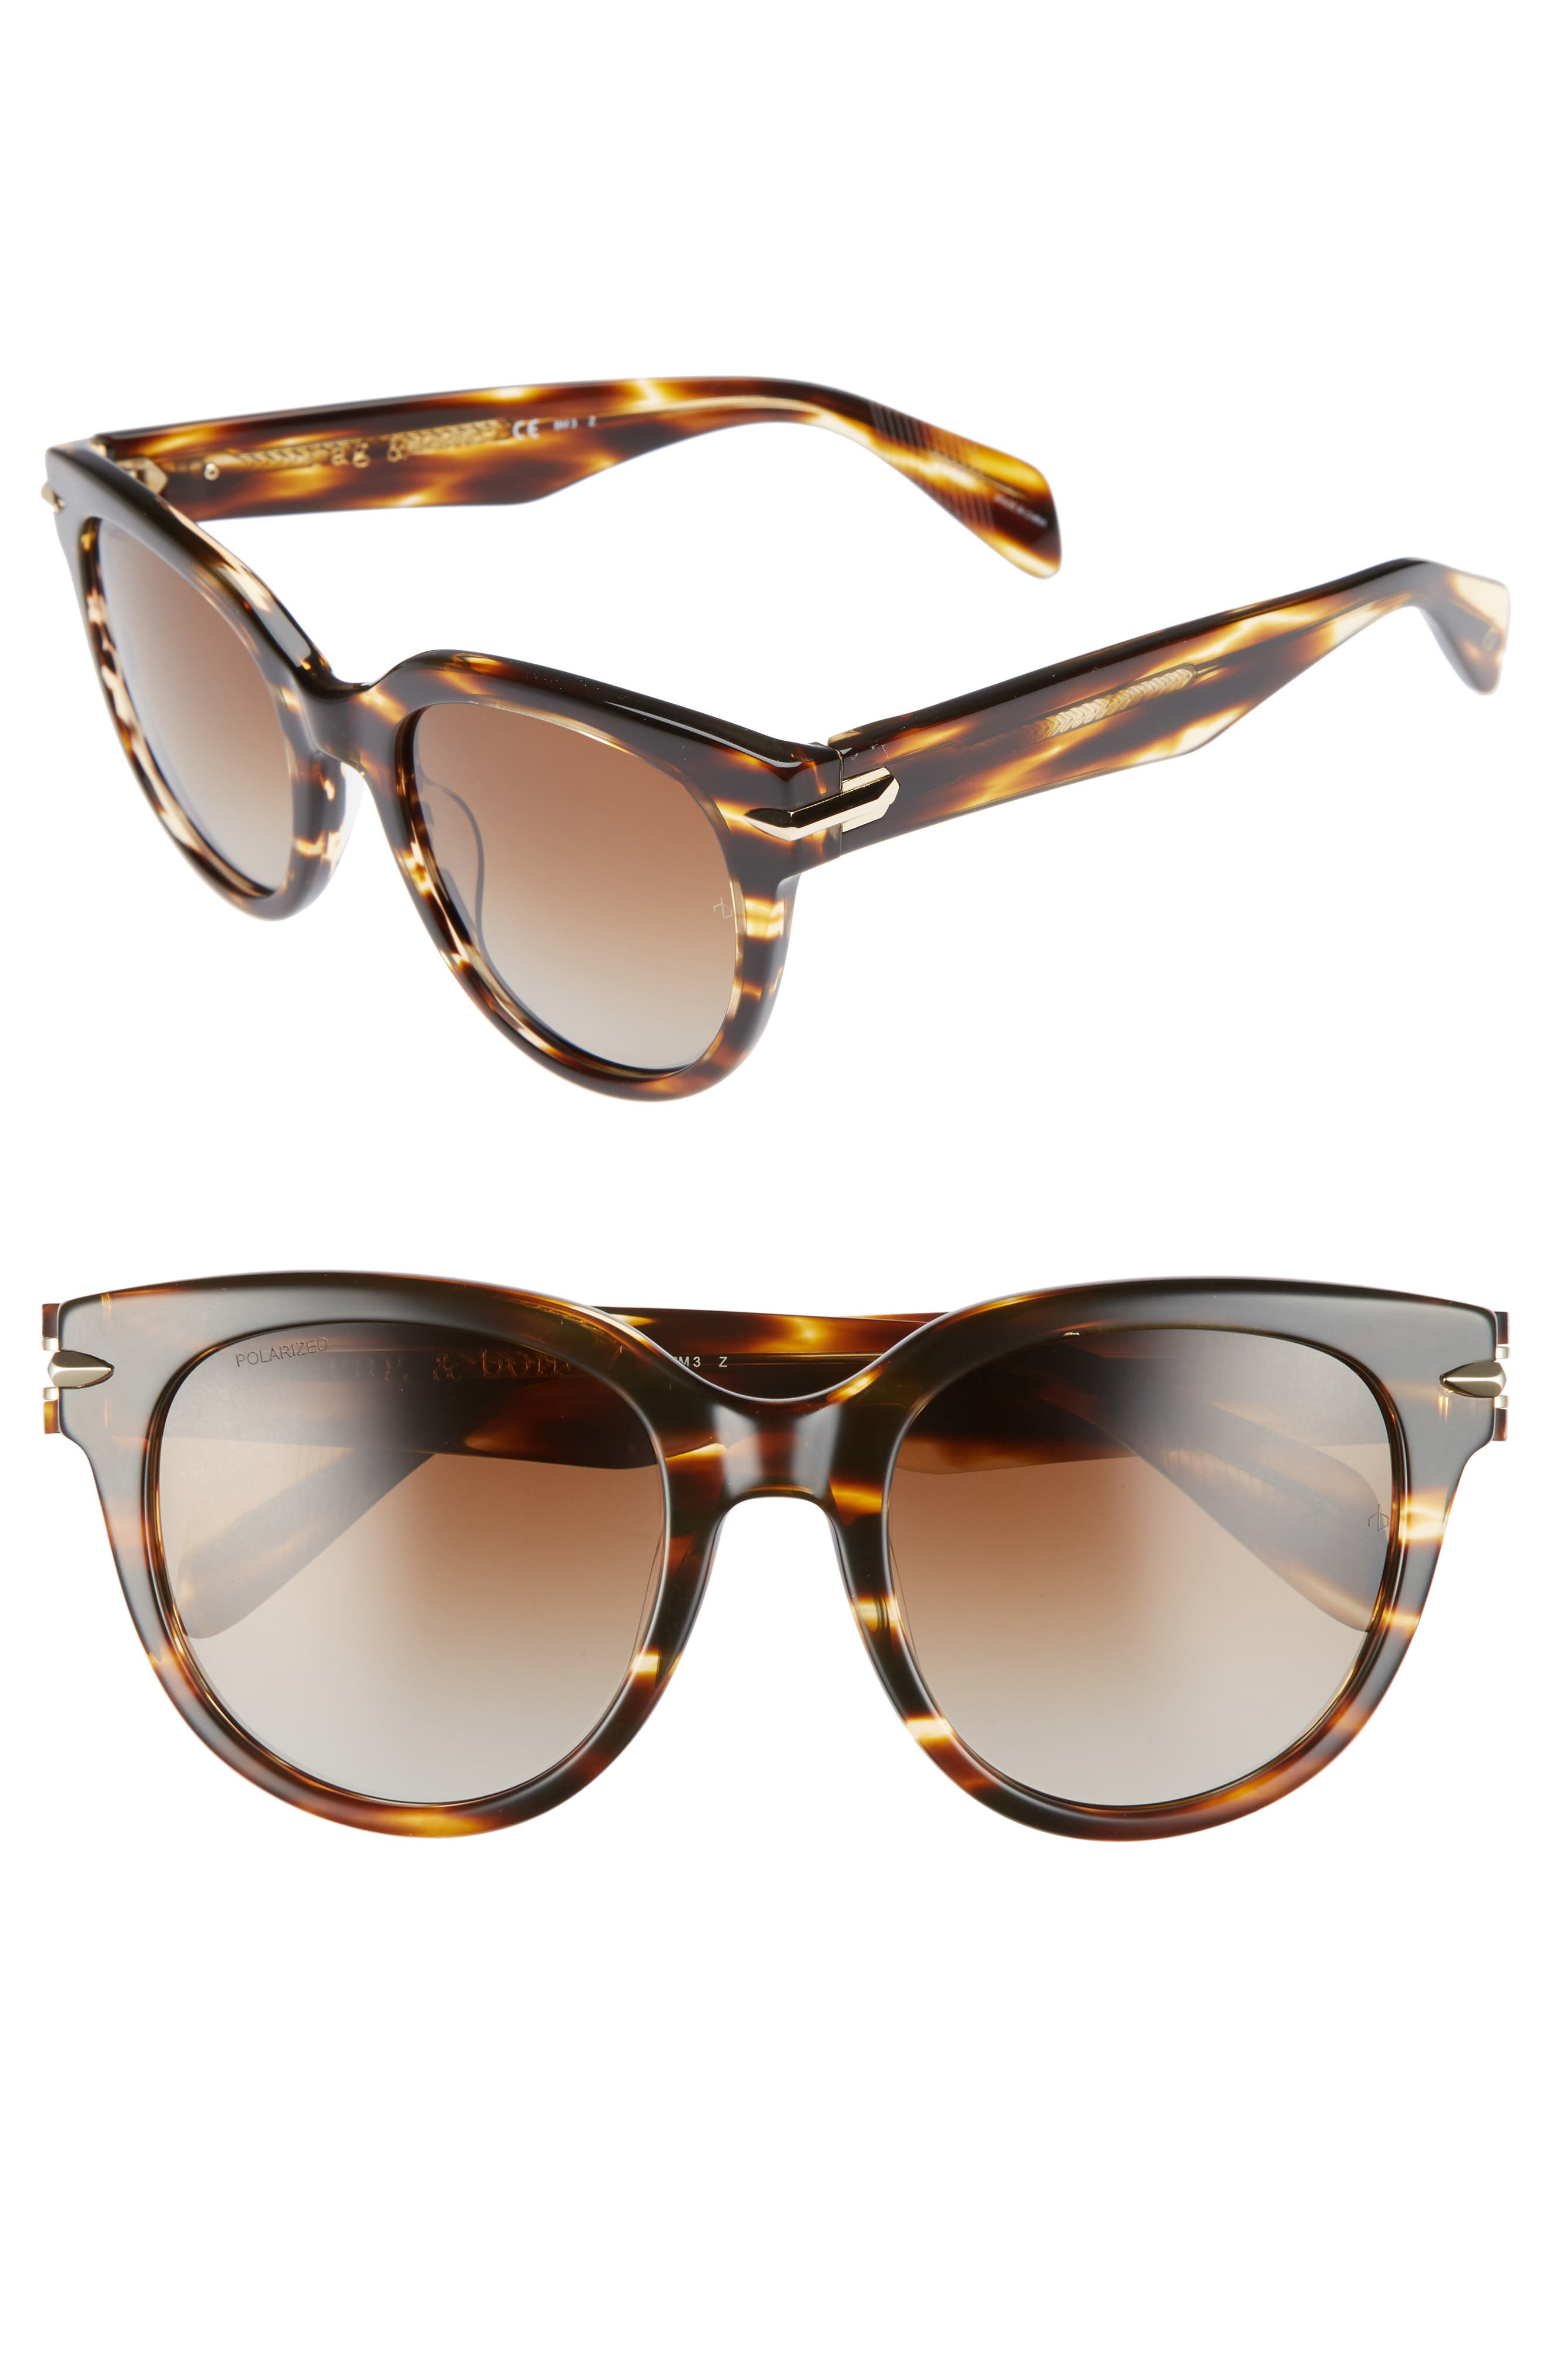 54mm Cat Eye Sunglasses,                         Main,                         color, Dark Havana